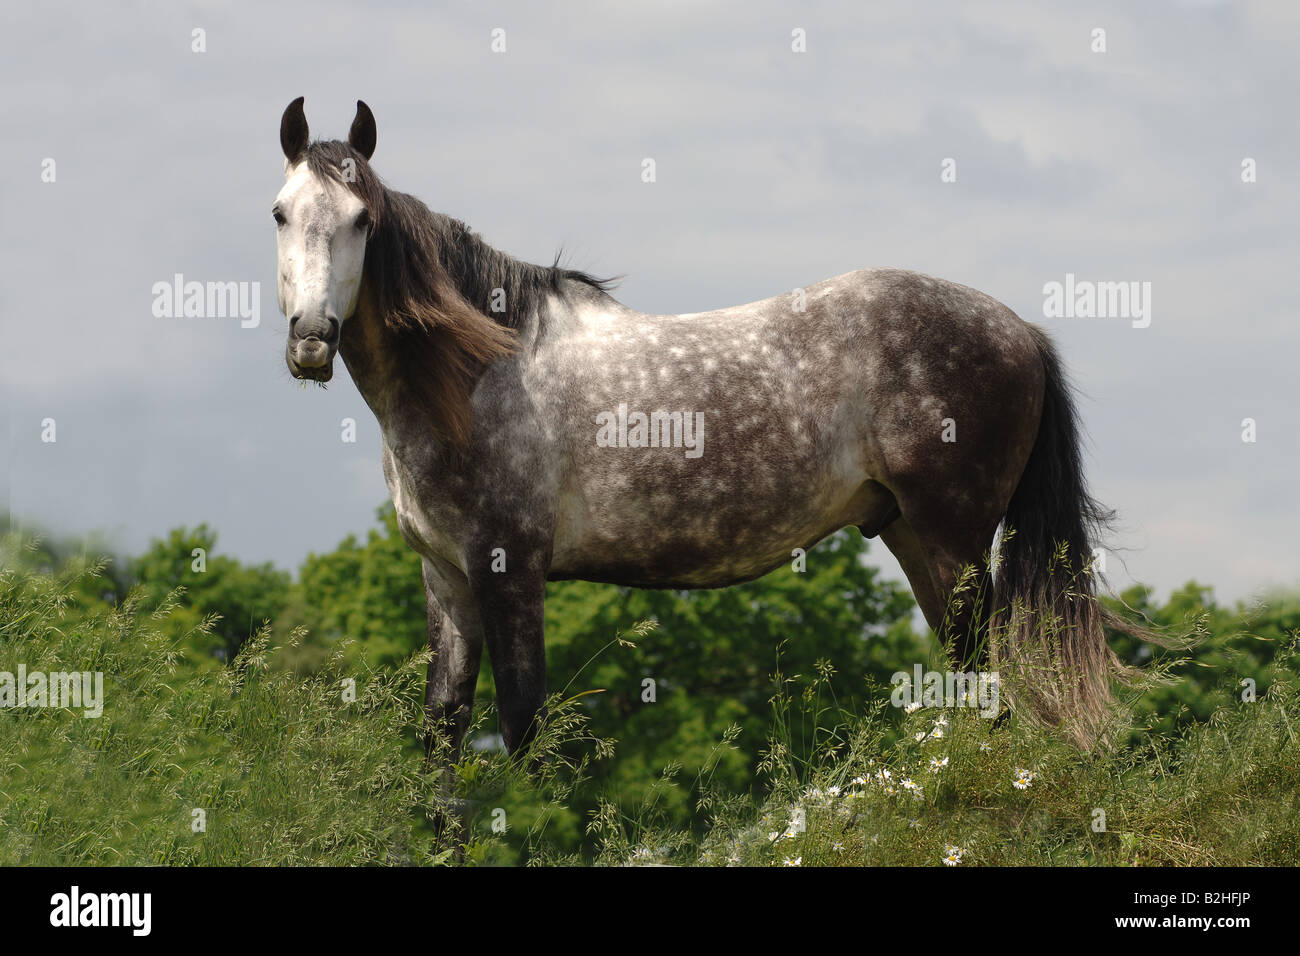 Andalusian Purebred Spanish Horse Pre breed horse Stock Photo